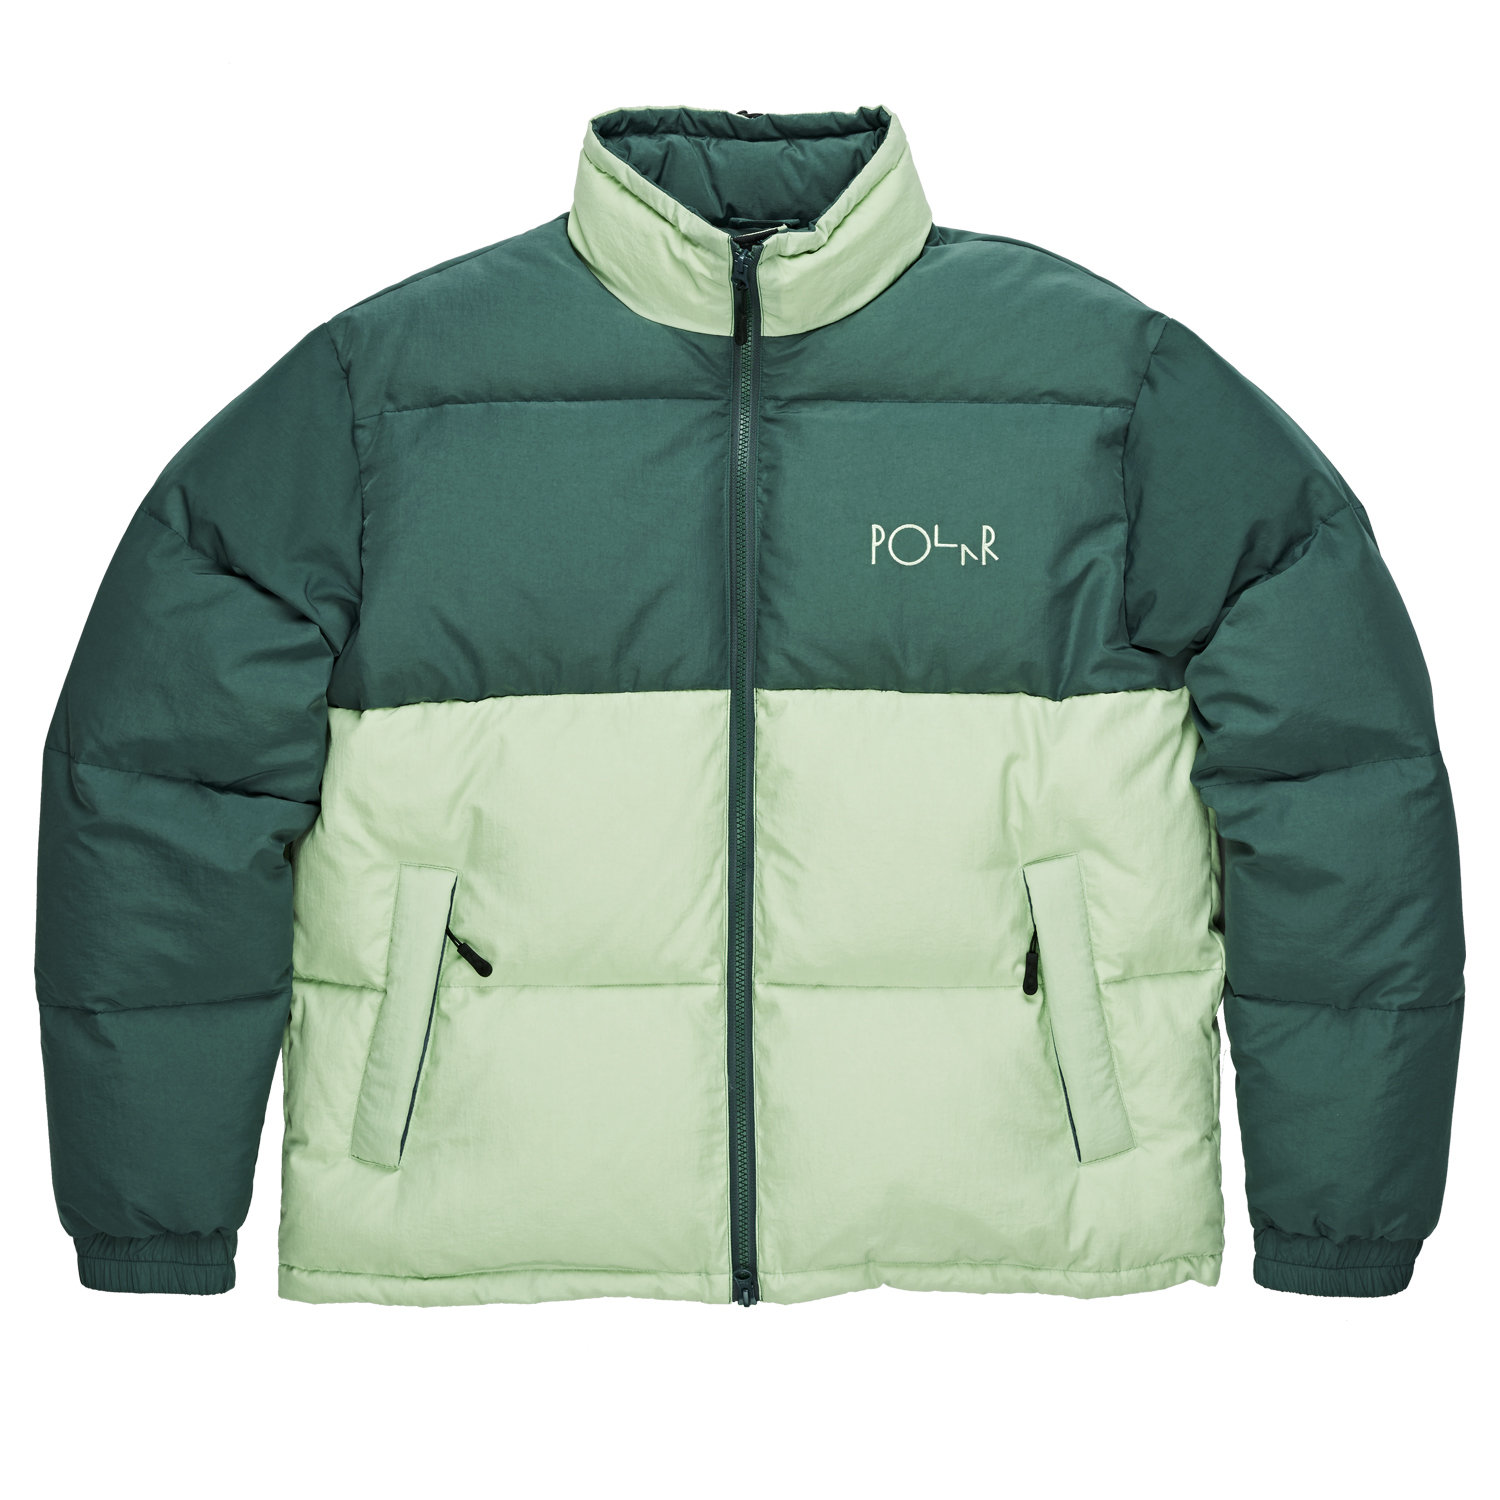 Jacket Polar - Combo Puffer - Green/Sea Foam Green